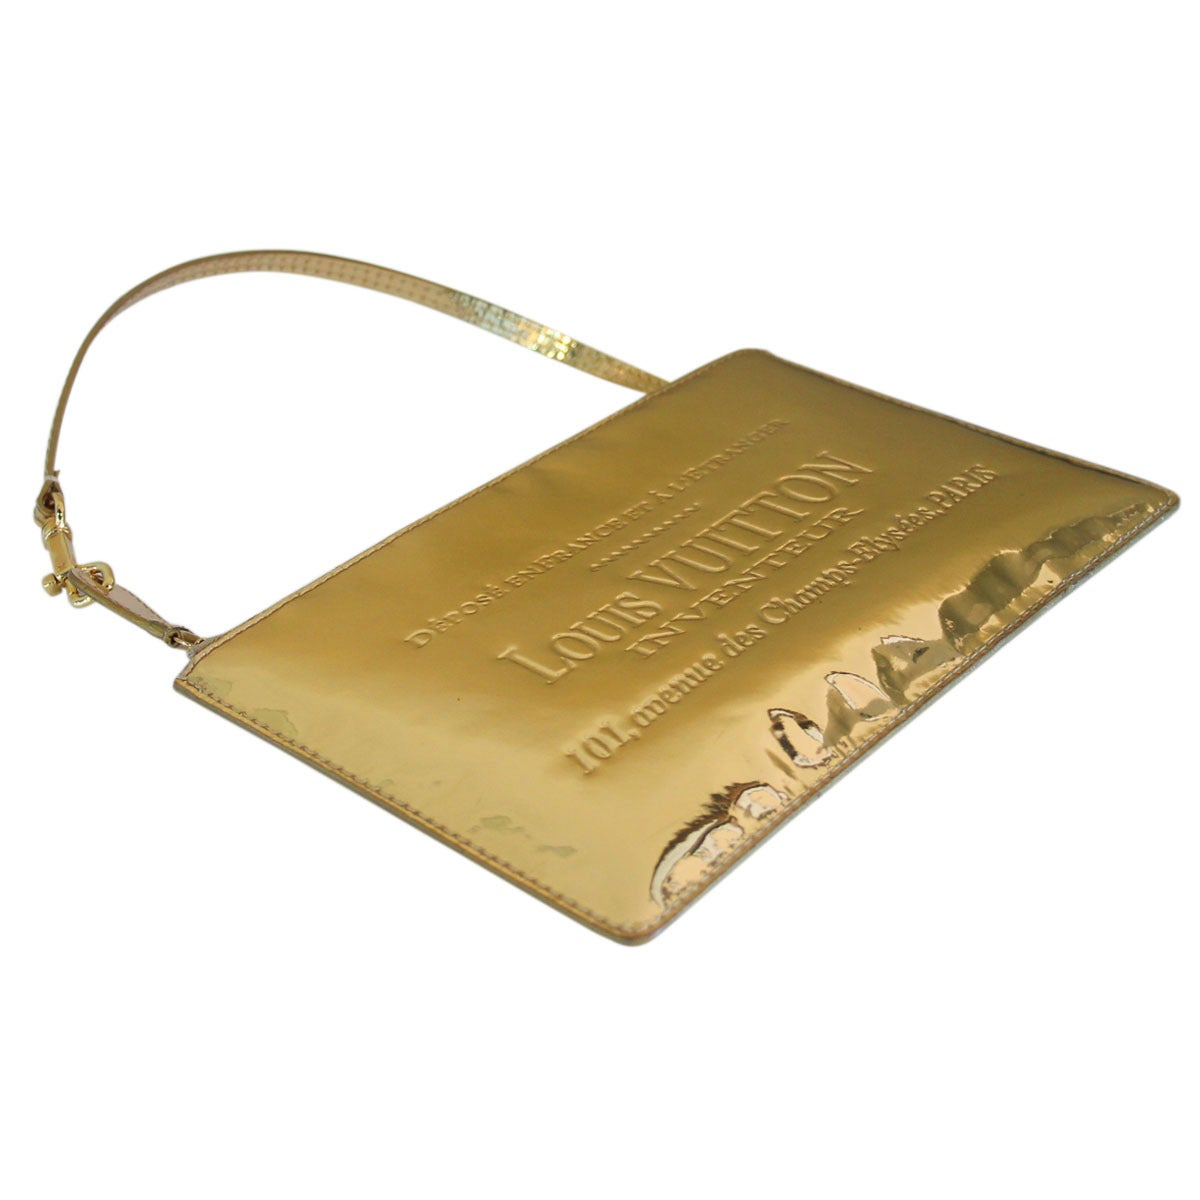 Louis vuitton limited edition gold miroir pochette clutch for Miroir louis vuitton